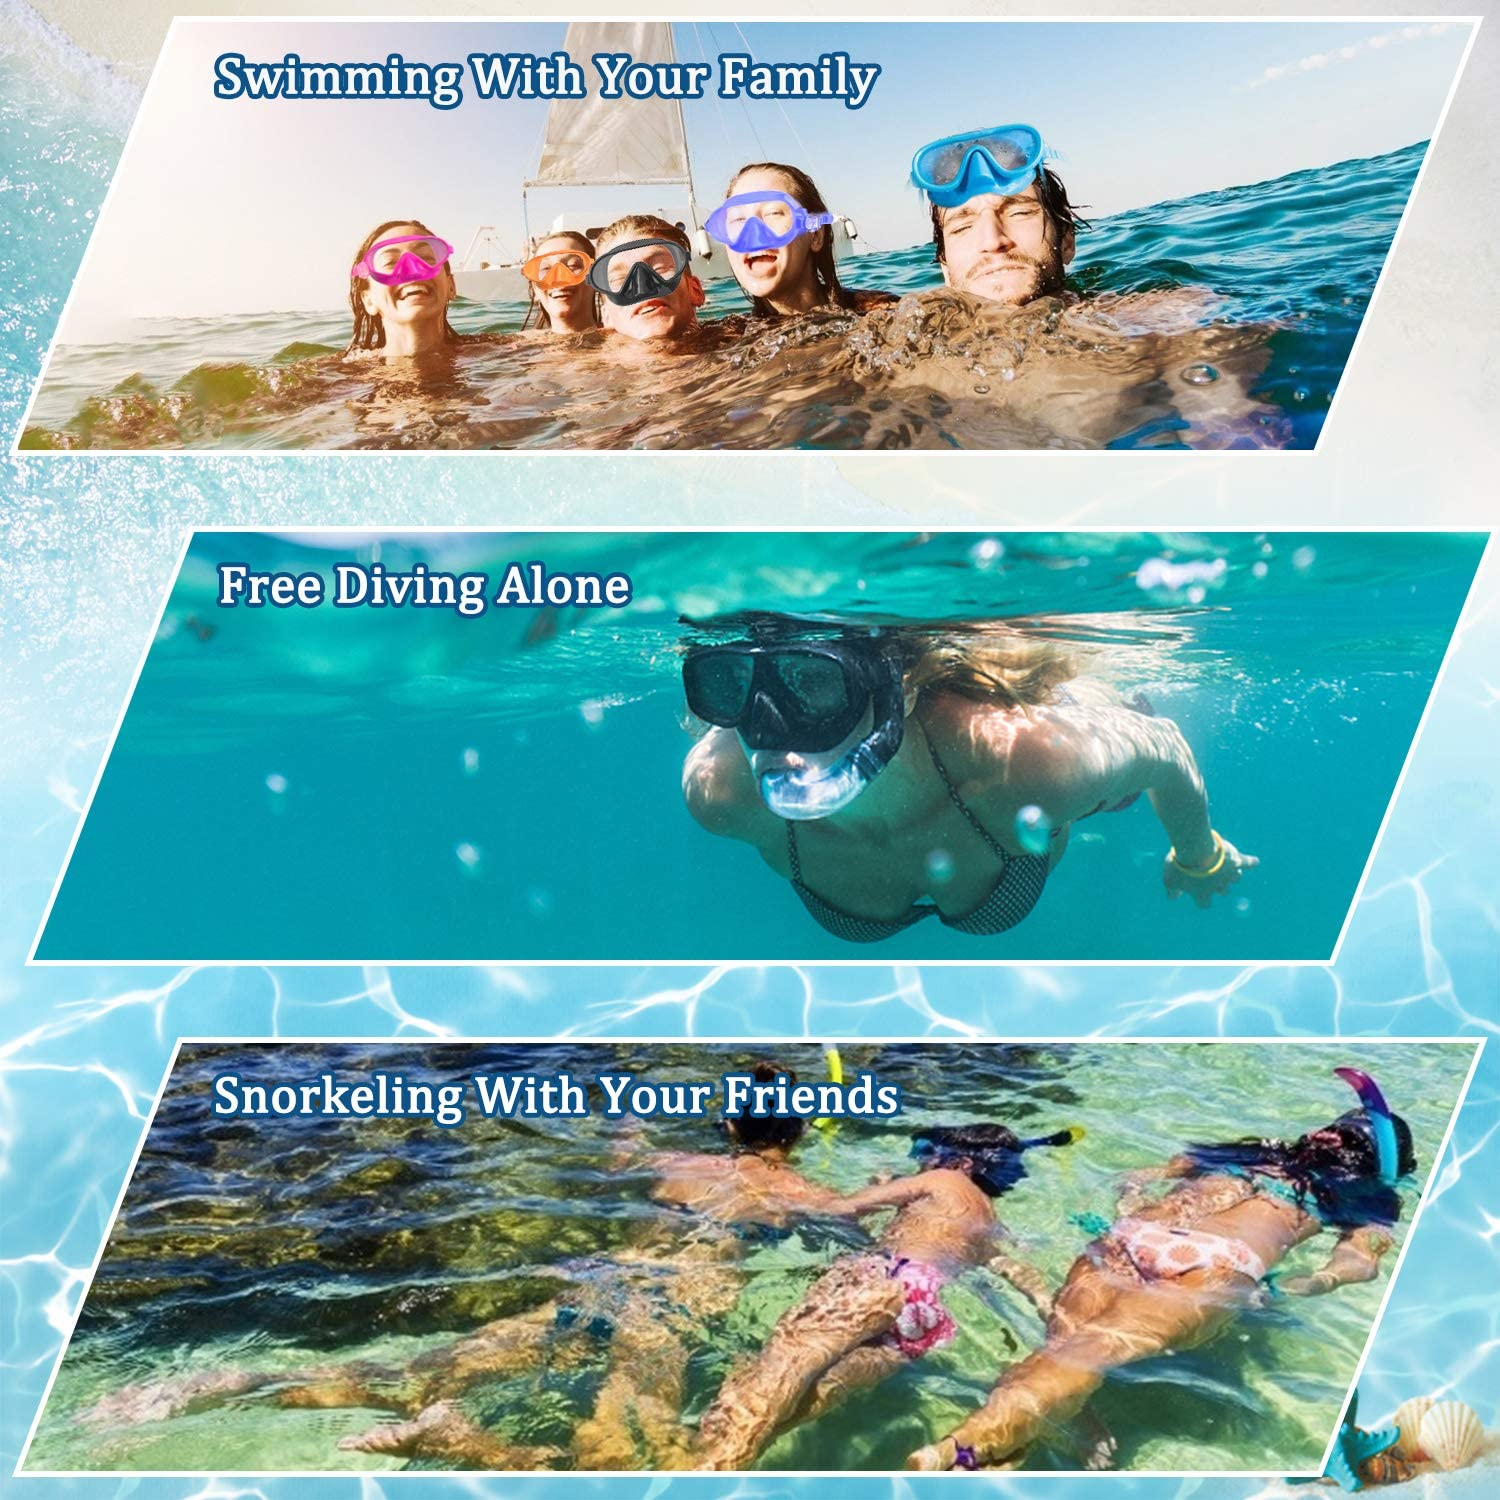 Anti-Fog Lens Leakproof Skirt 180/° Panoramic View Face Dive Masks for Adults Women Men Fxexblin Swim Mask Swimming Goggles Nose Cover Snorkel Gear Scuba Diving Snorkeling